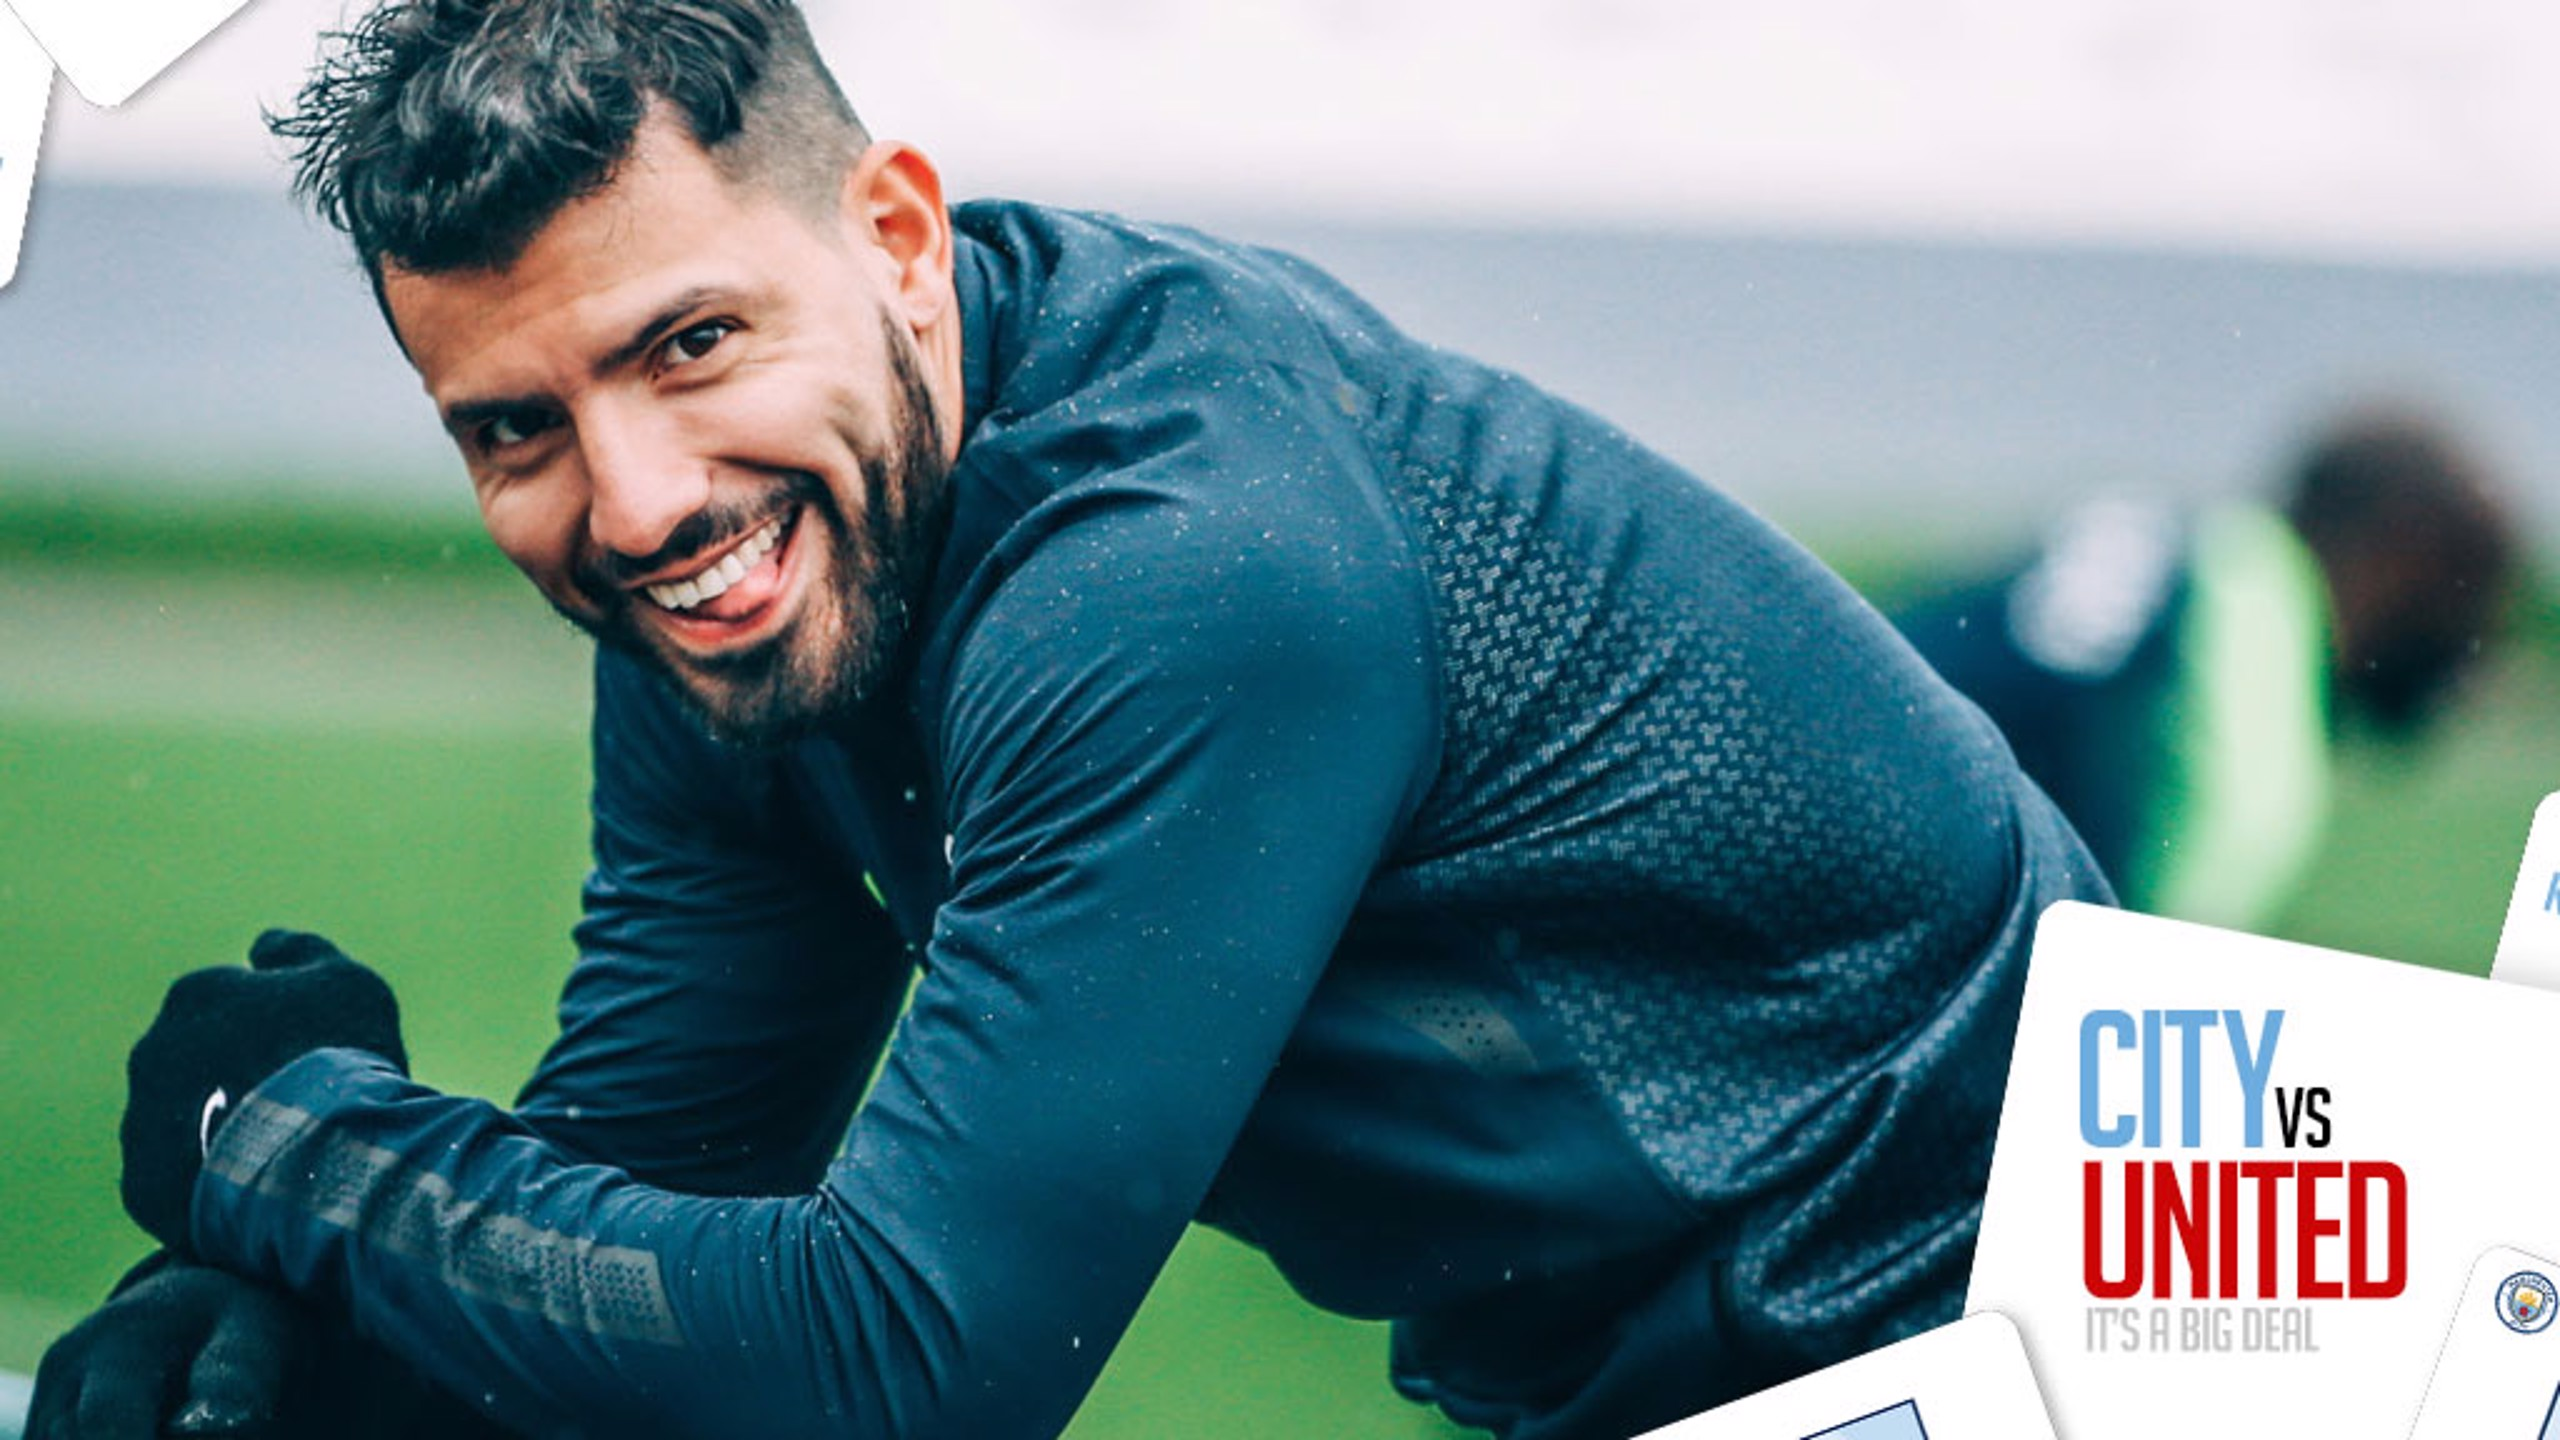 DERBY FOCUS: City strike ace Sergio Aguero